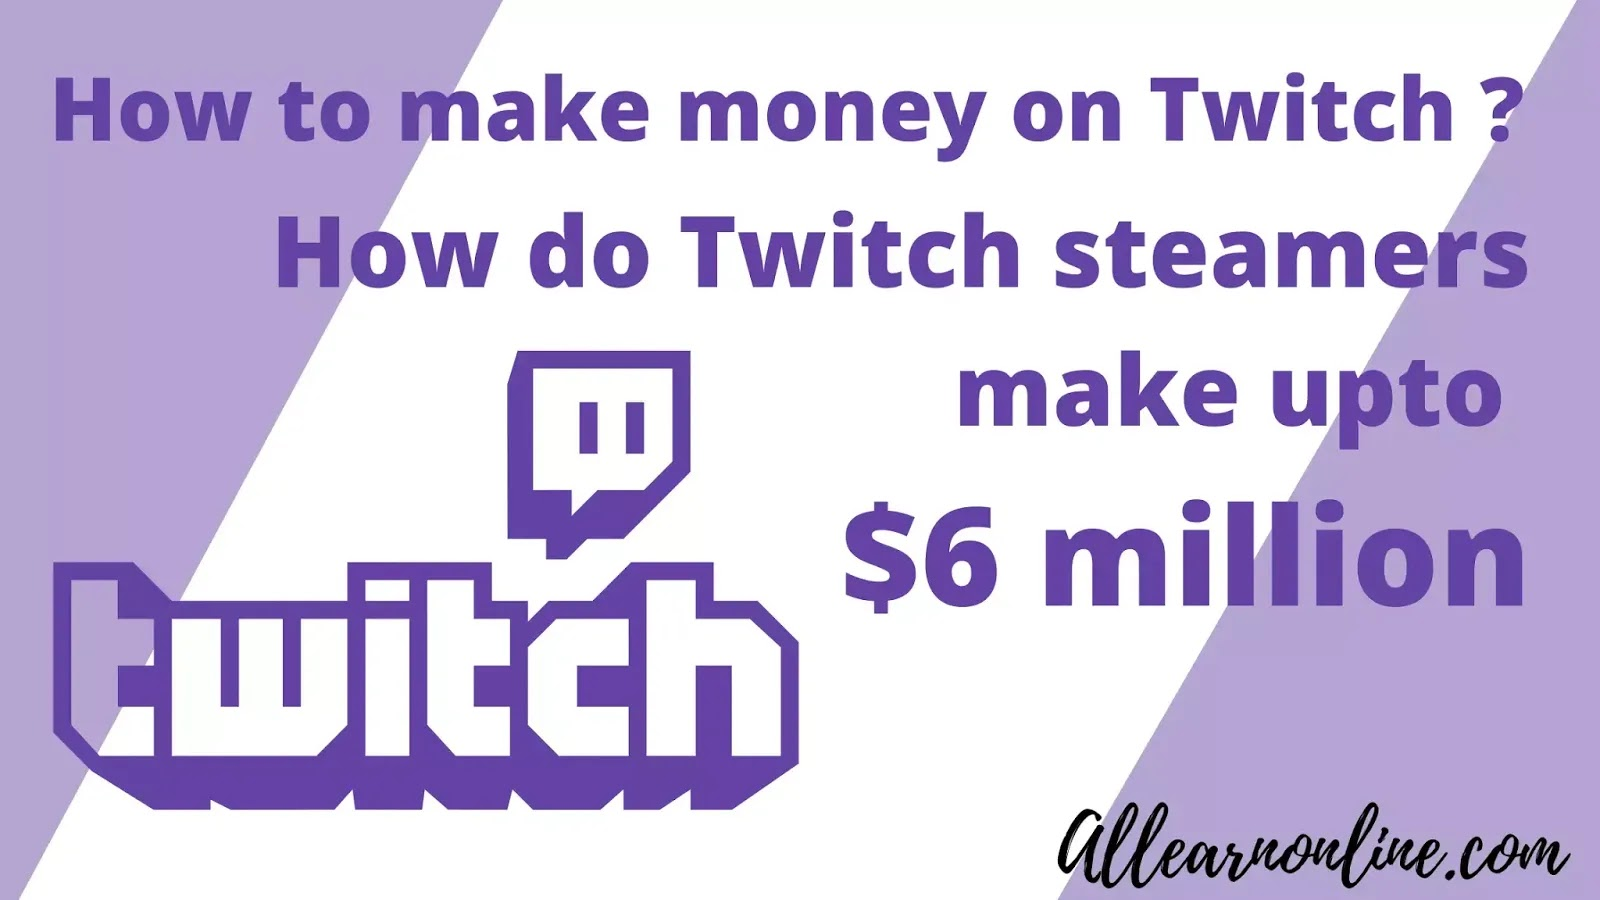 How to make money on twitch - How do Twitch steamers make upto 6 million